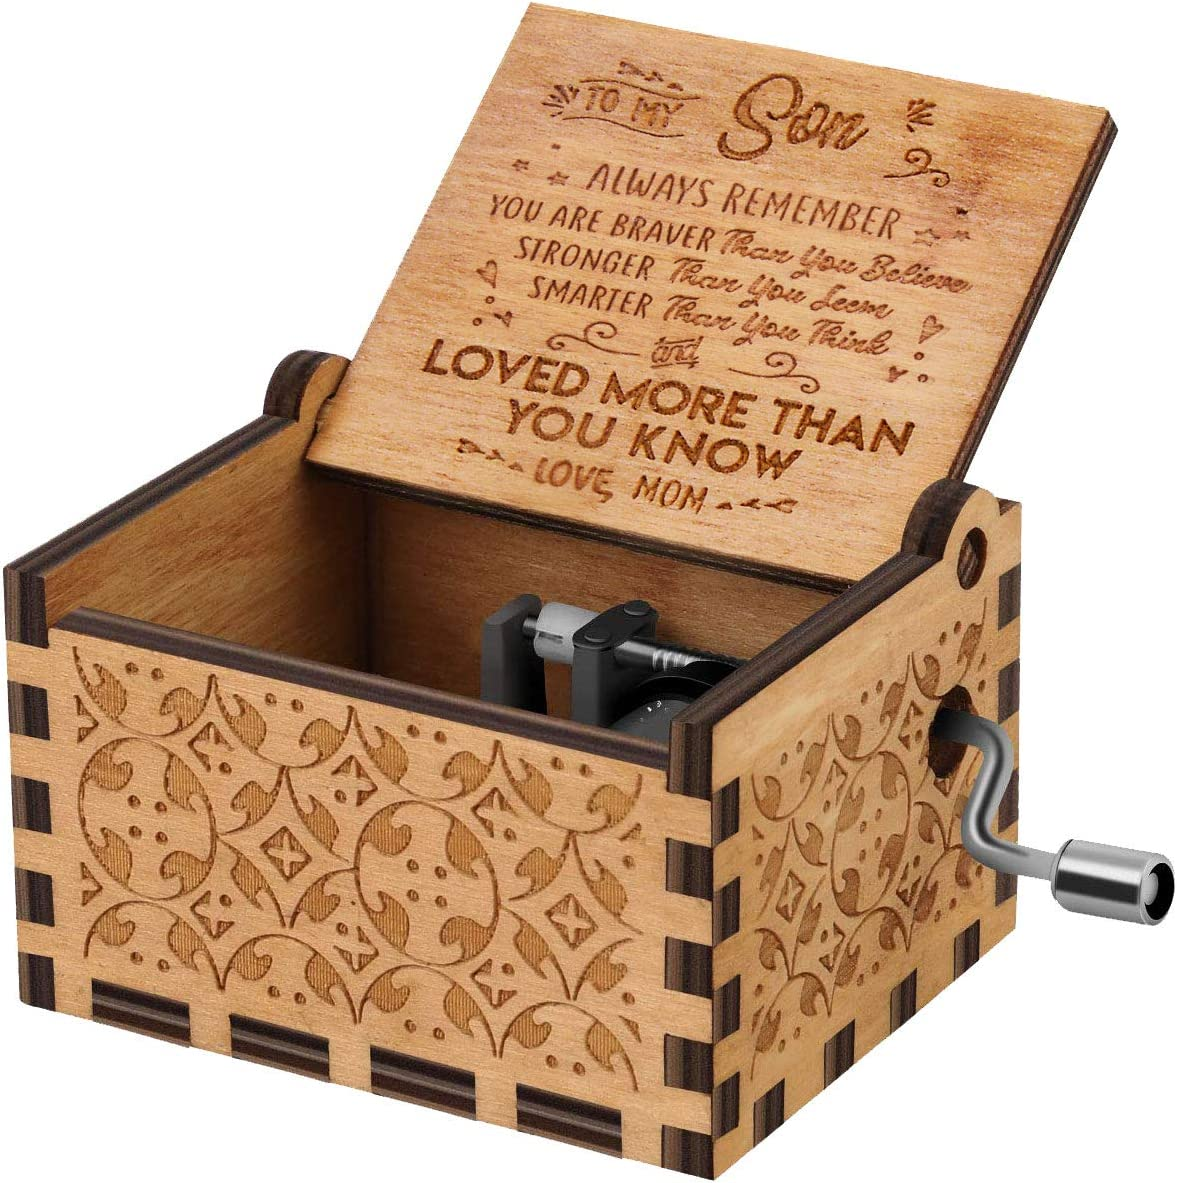 U R My Sunshine Music Box Hand crank Wood Laser Engraved Vintage Musical box Gifts to son from Mom on Birthday Thanksgiving days Christmas(You are braver than)